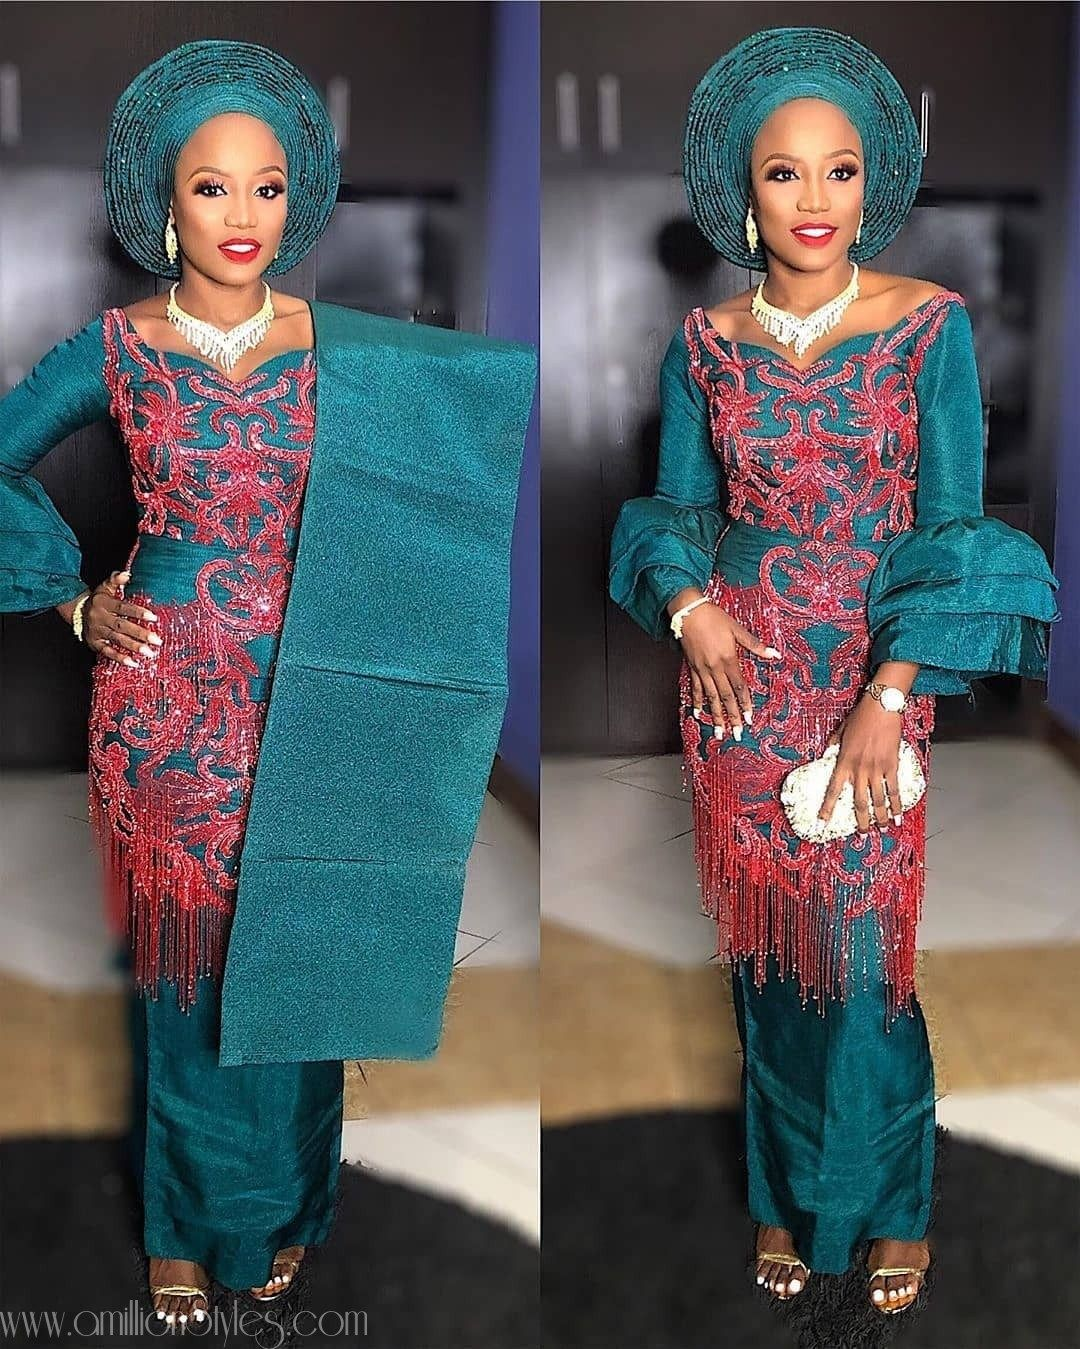 5 Traditional Bridal Styles From Nigeria  Wedding outfits for